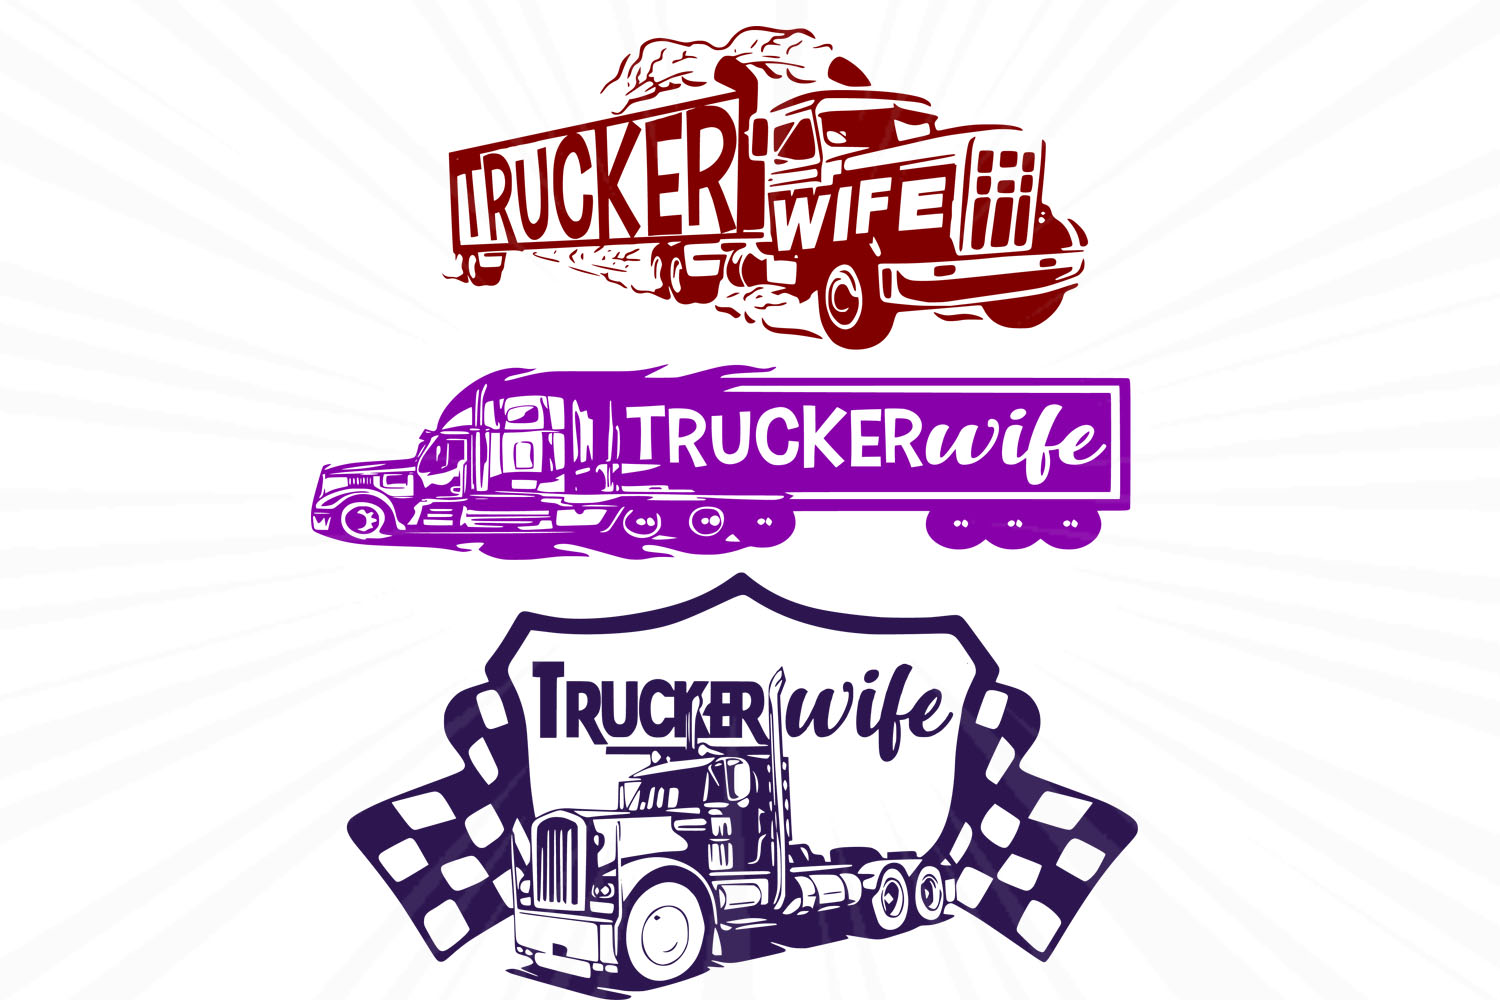 Download Free Wife Truck Trucker Wife Graphic By Johanruartist Creative Fabrica for Cricut Explore, Silhouette and other cutting machines.